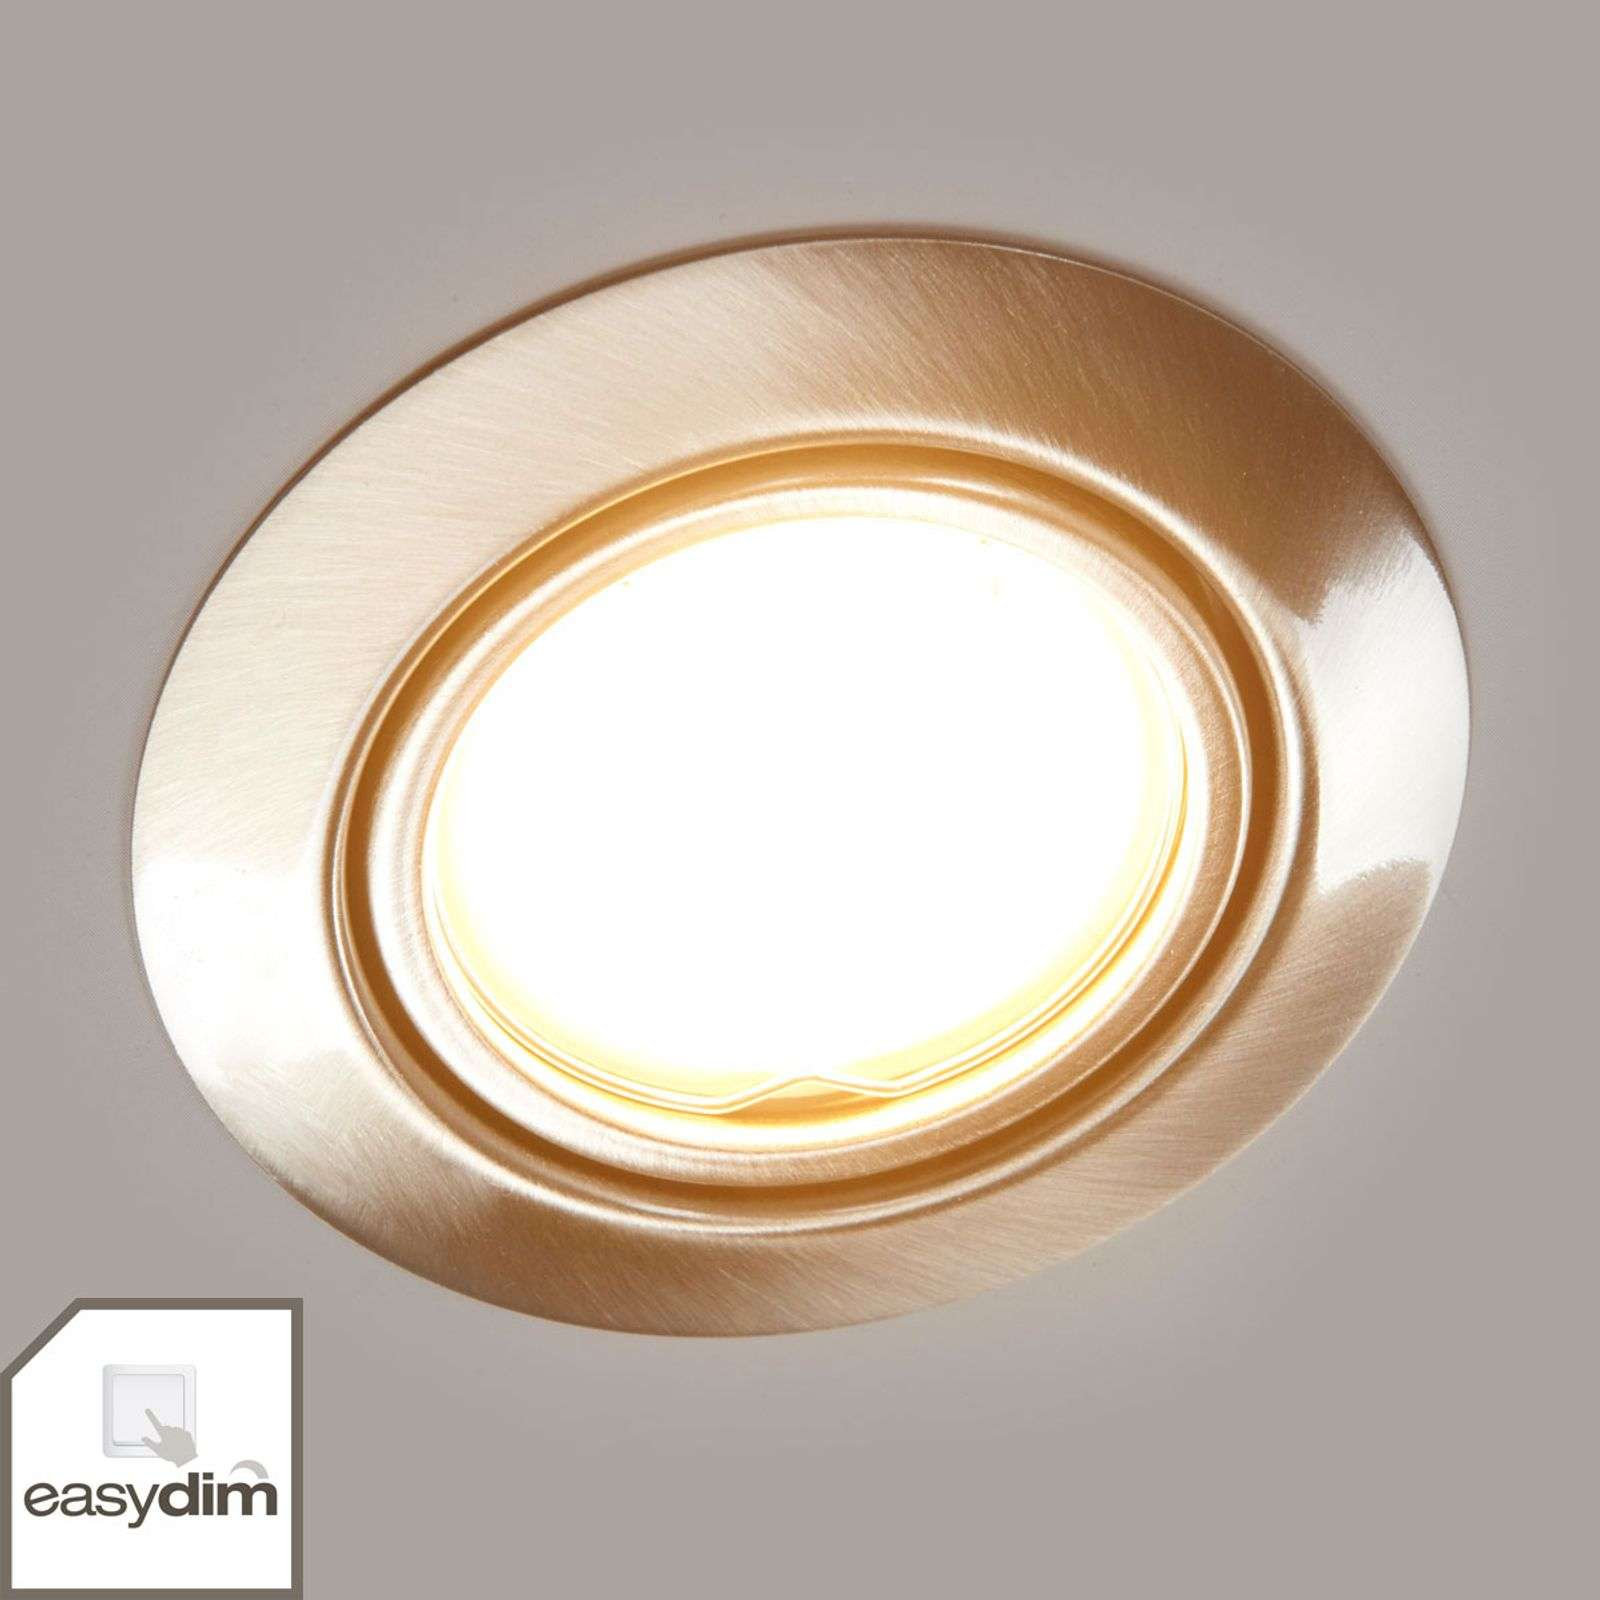 Spot encastrable Easydim Juna, couleur nicke, LED